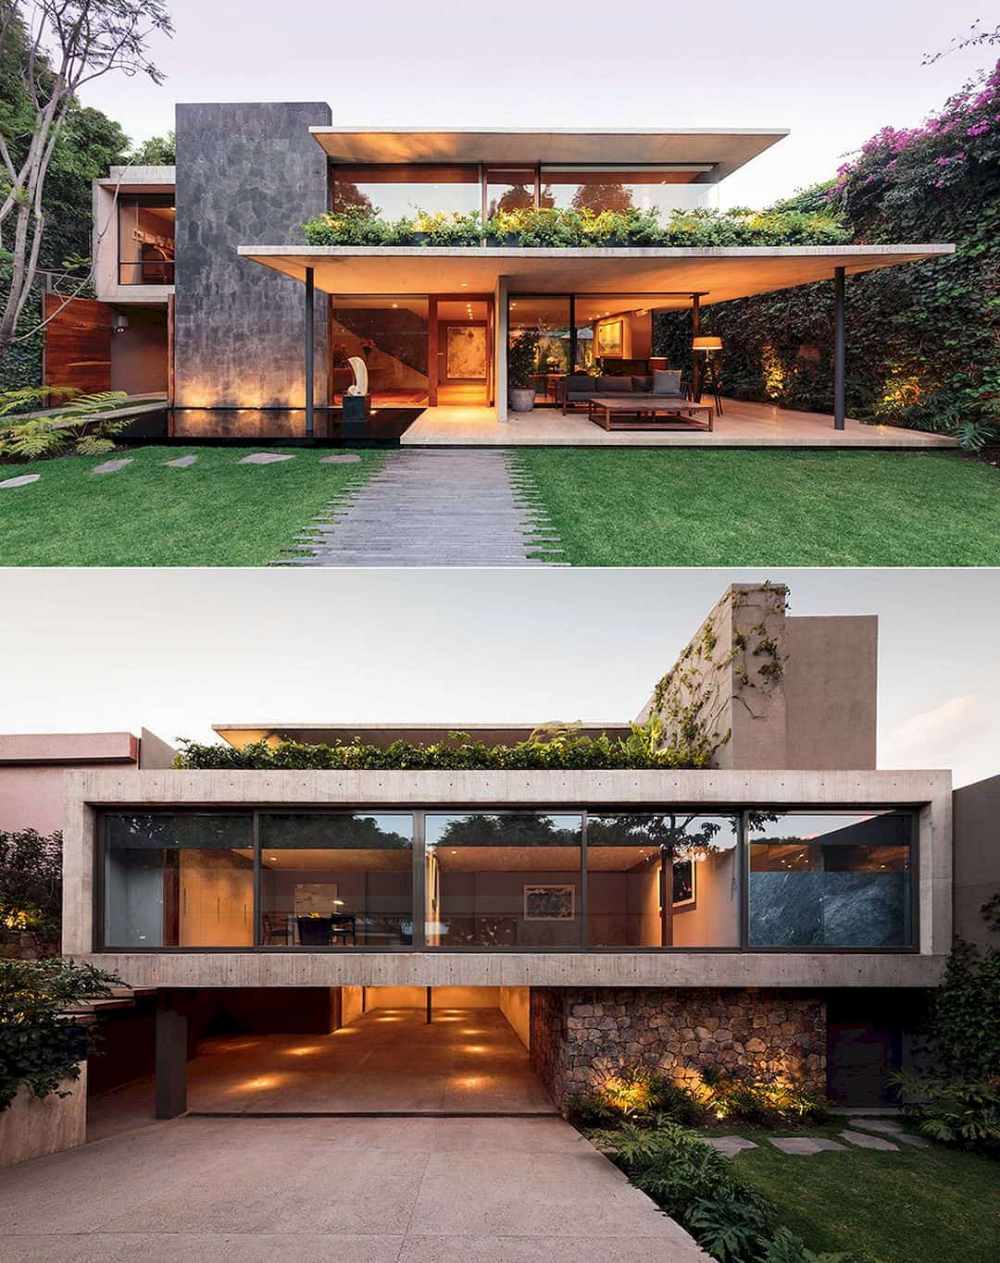 House With Orange Taste Modern Interior Design With Orange Taste In A Comfortable House House Architecture Design Modern Architecture House Modern House Design